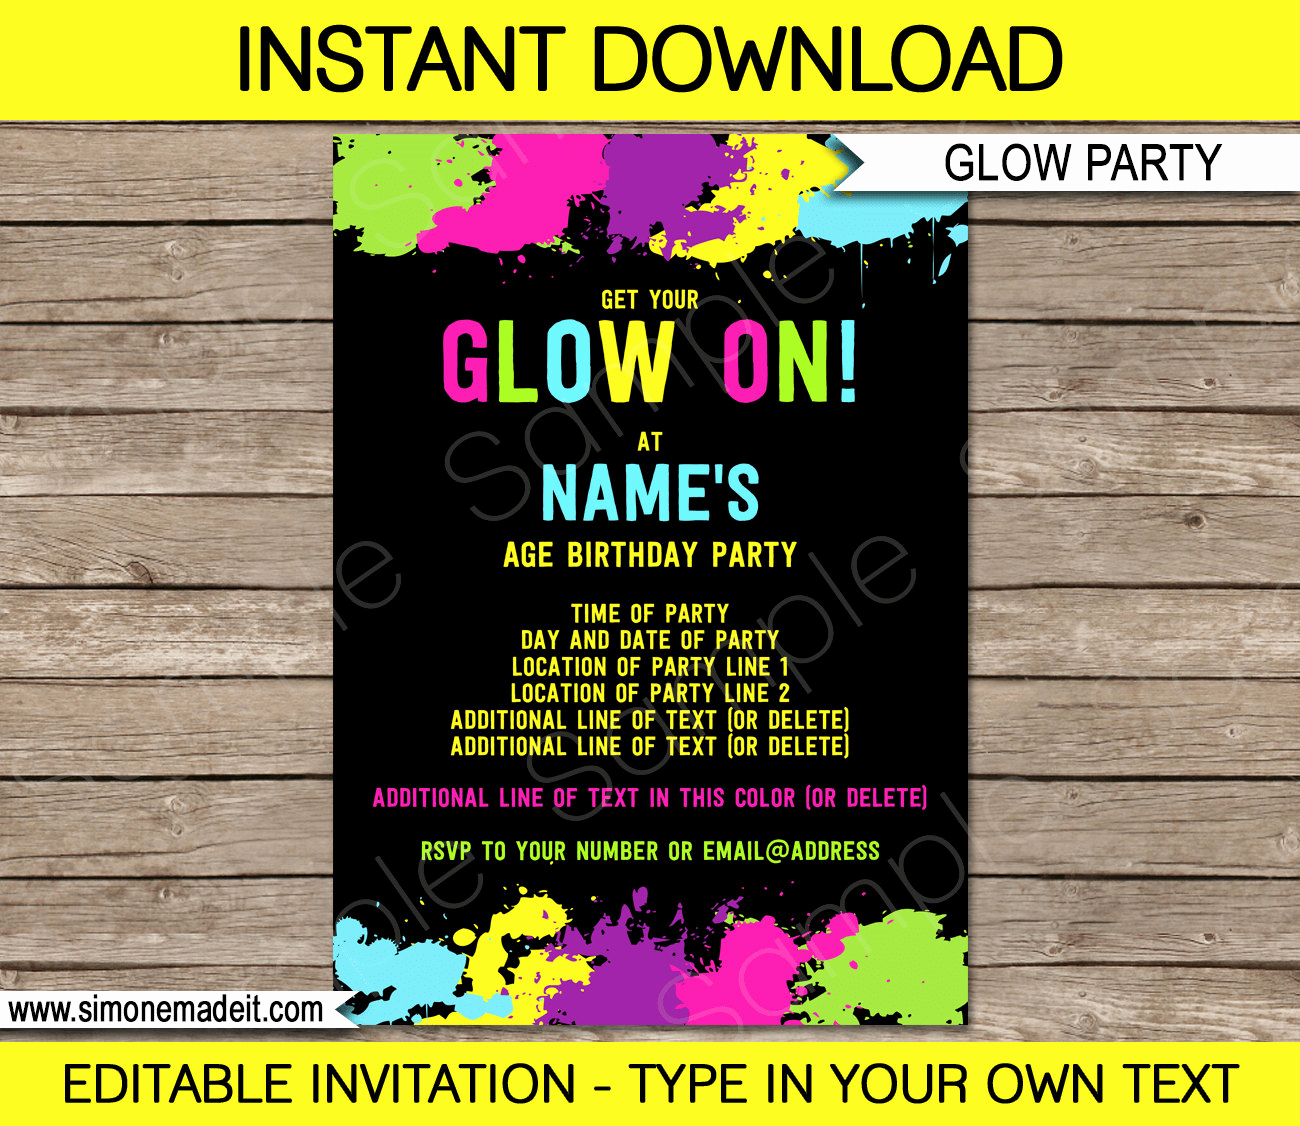 Favorite Things Party Invitation Template Lovely Neon Glow Invitation Template Neon theme Birthday Party